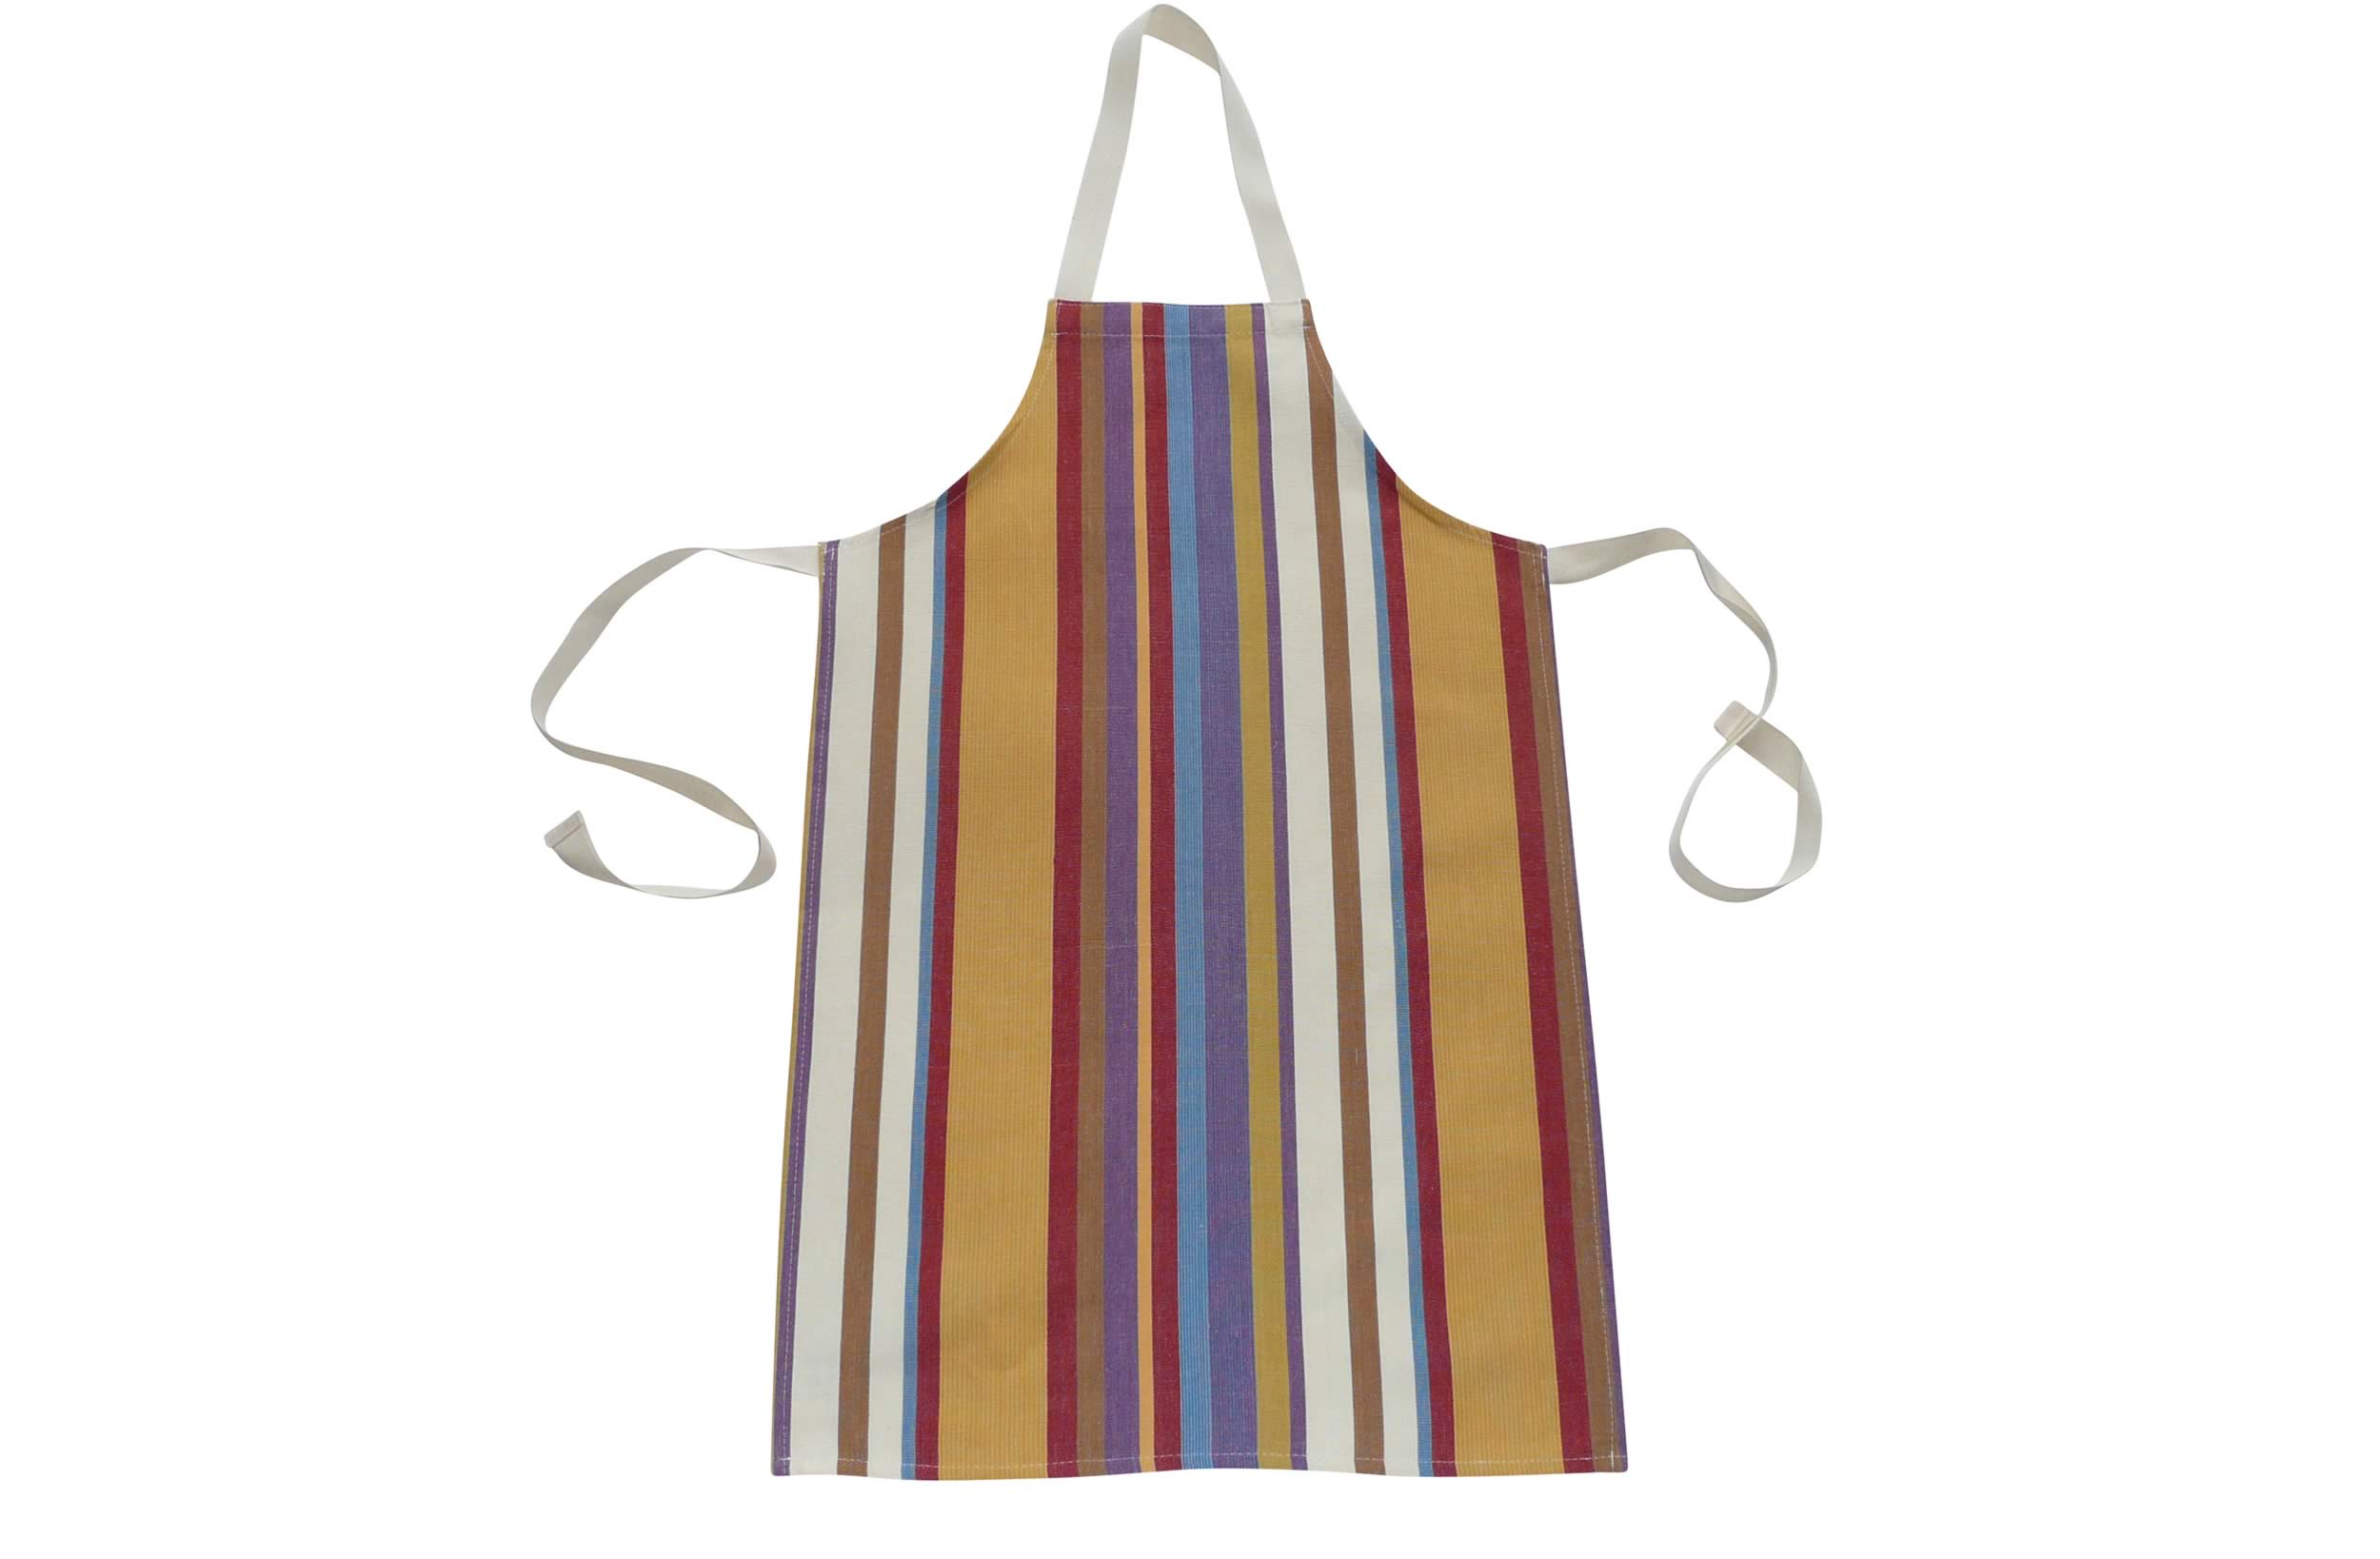 Childrens Aprons apricot, rust, blue stripes